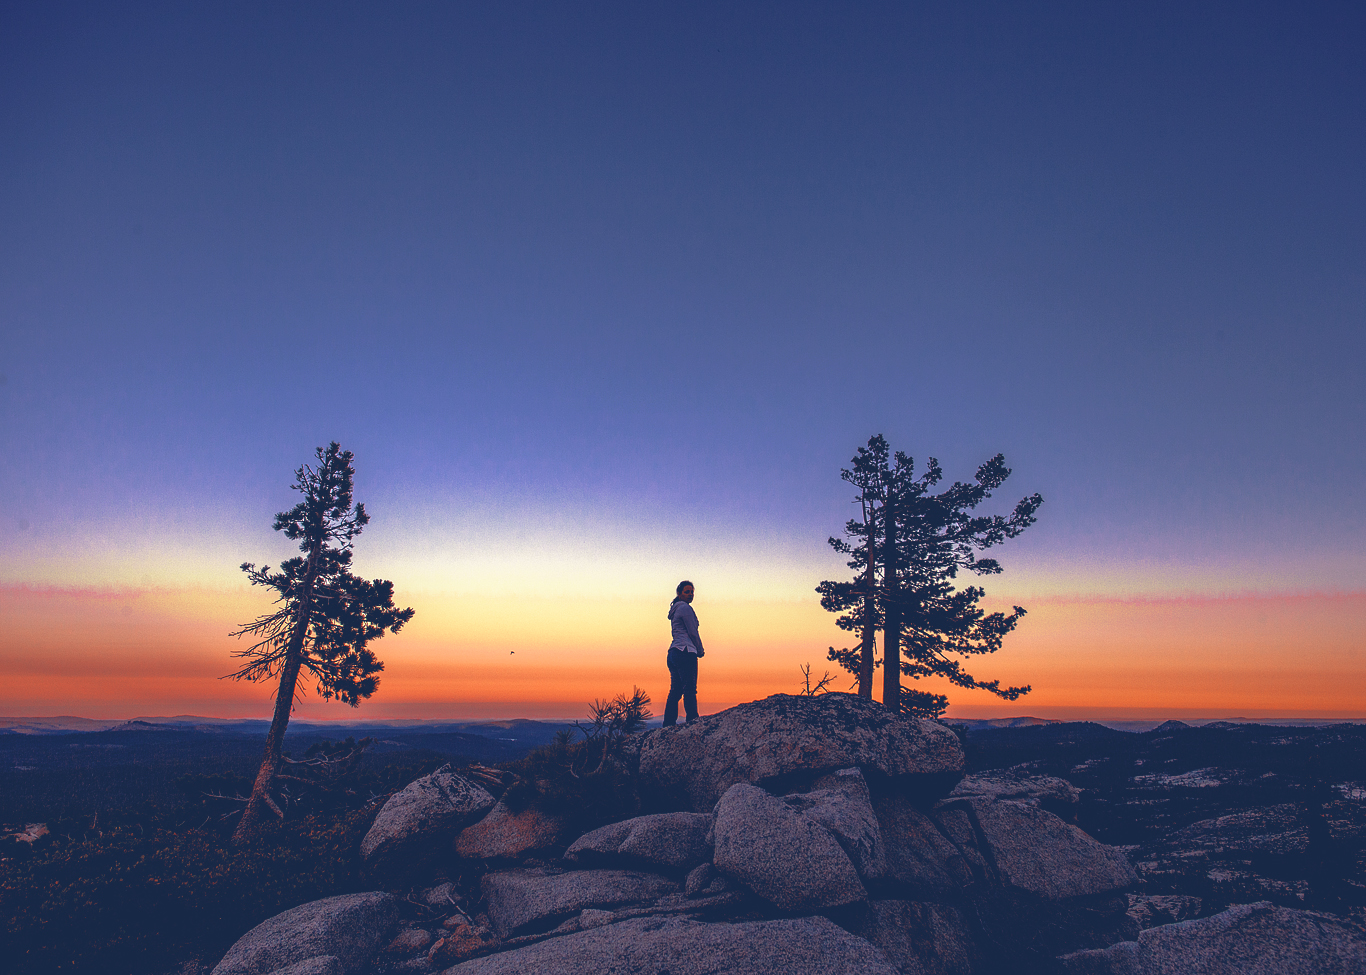 Coffee on a cliff while watching the sunrise - Hemlock Lake, Desolation Wilderness